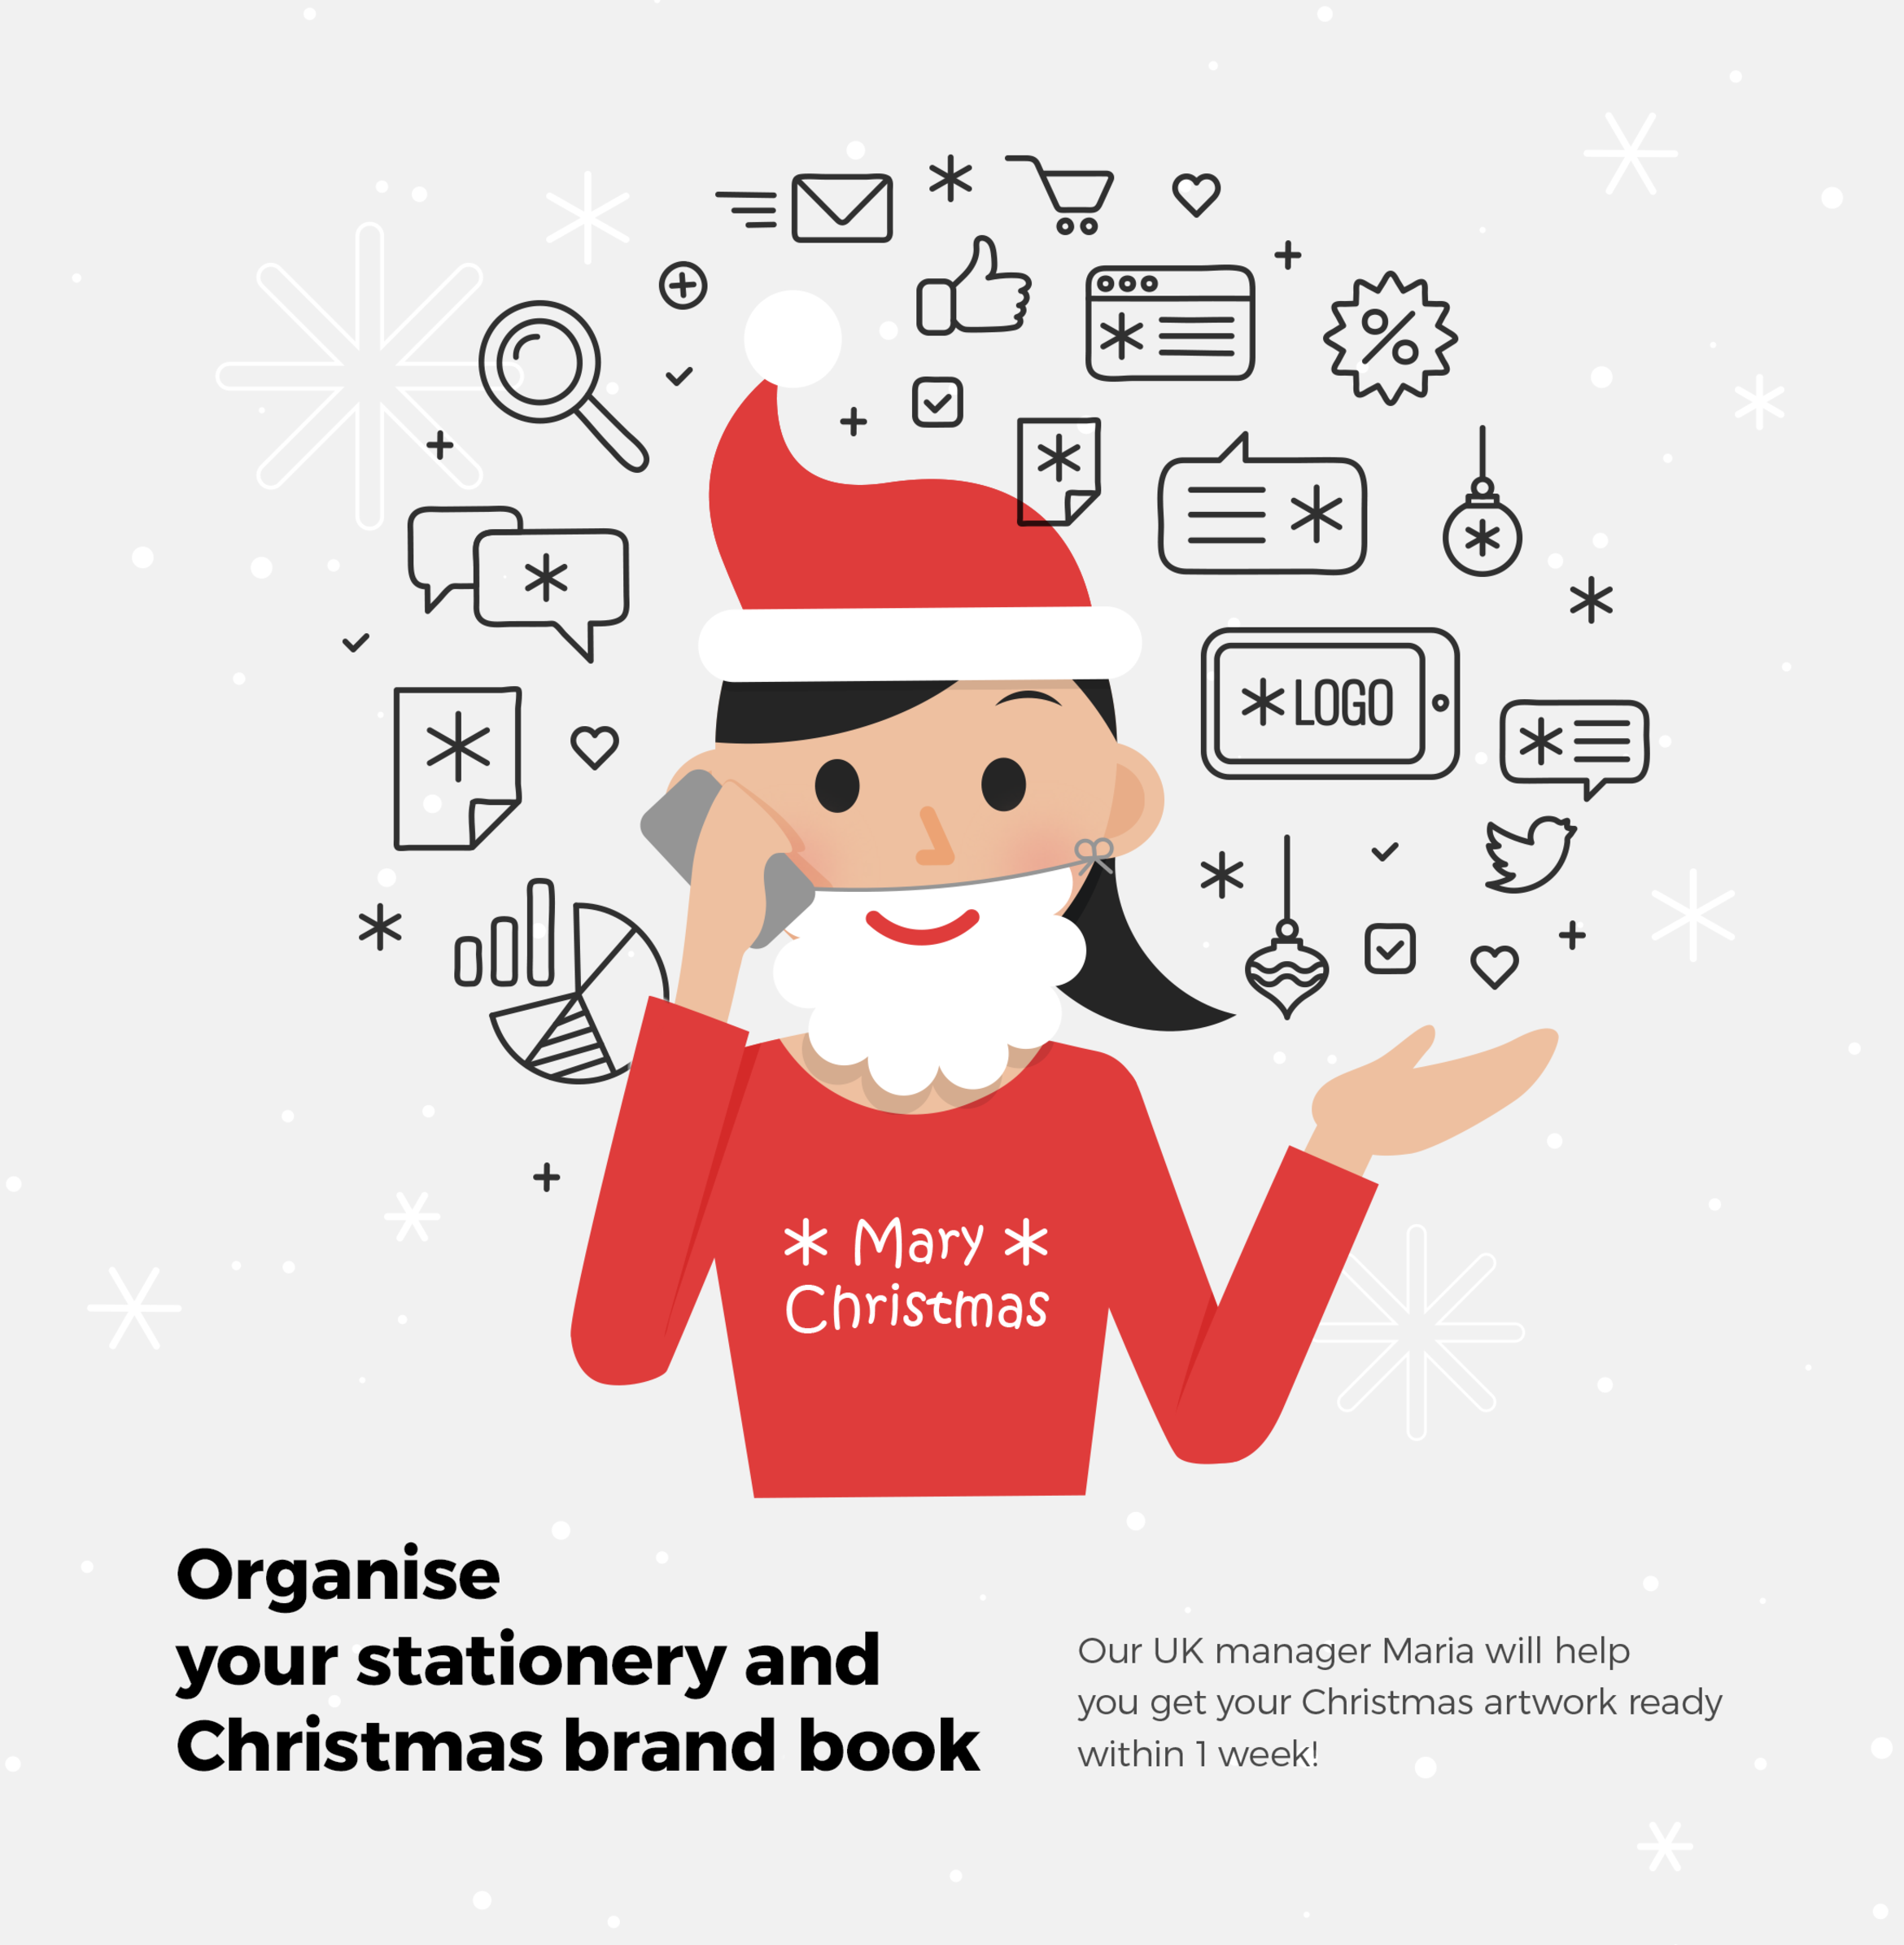 Organise your Stationery and Christmas brand book!